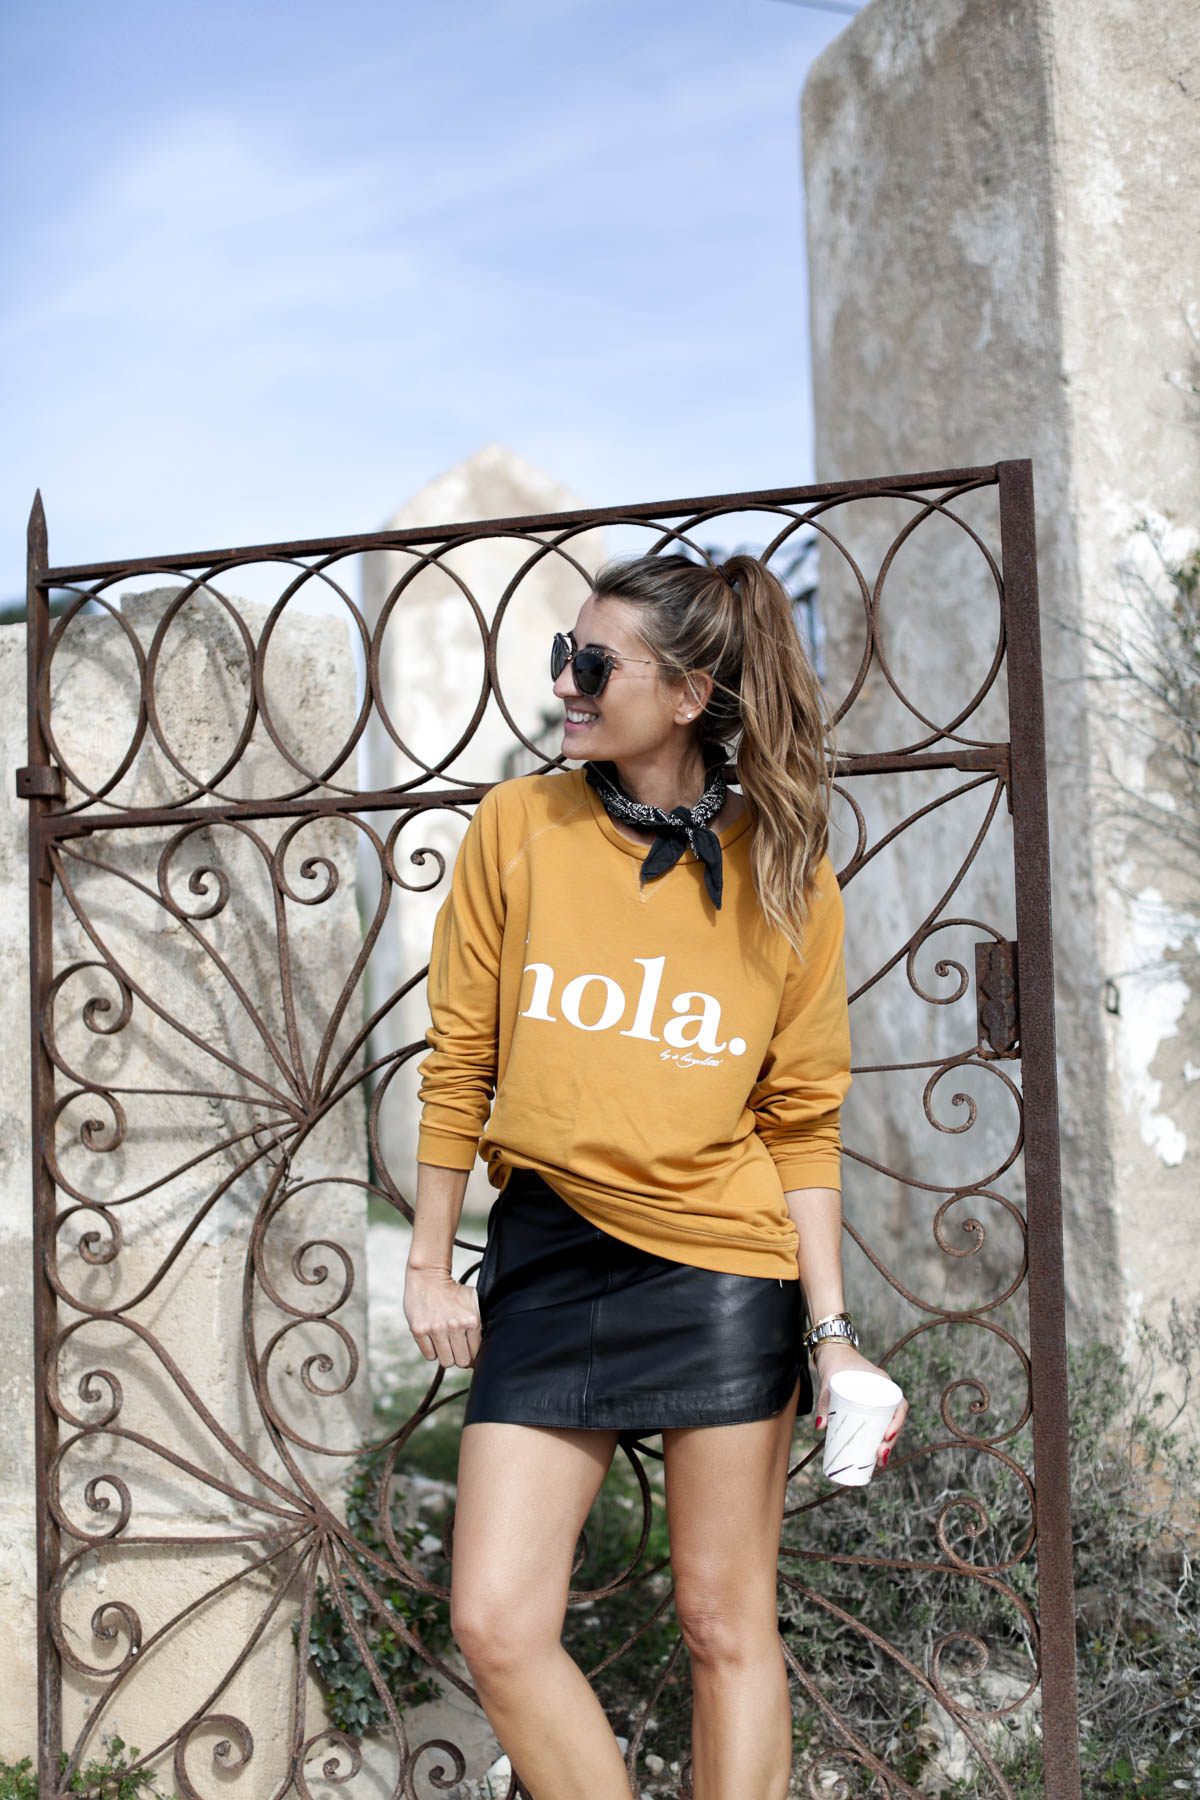 black-friday-a-bicyclette-sweatshirt-hoodie-all-star-leather-piel-cuero-celine-bag-bolso-mini-skirt-falda-streetstyle-look-bartabac-outfit-moda-blogger-2